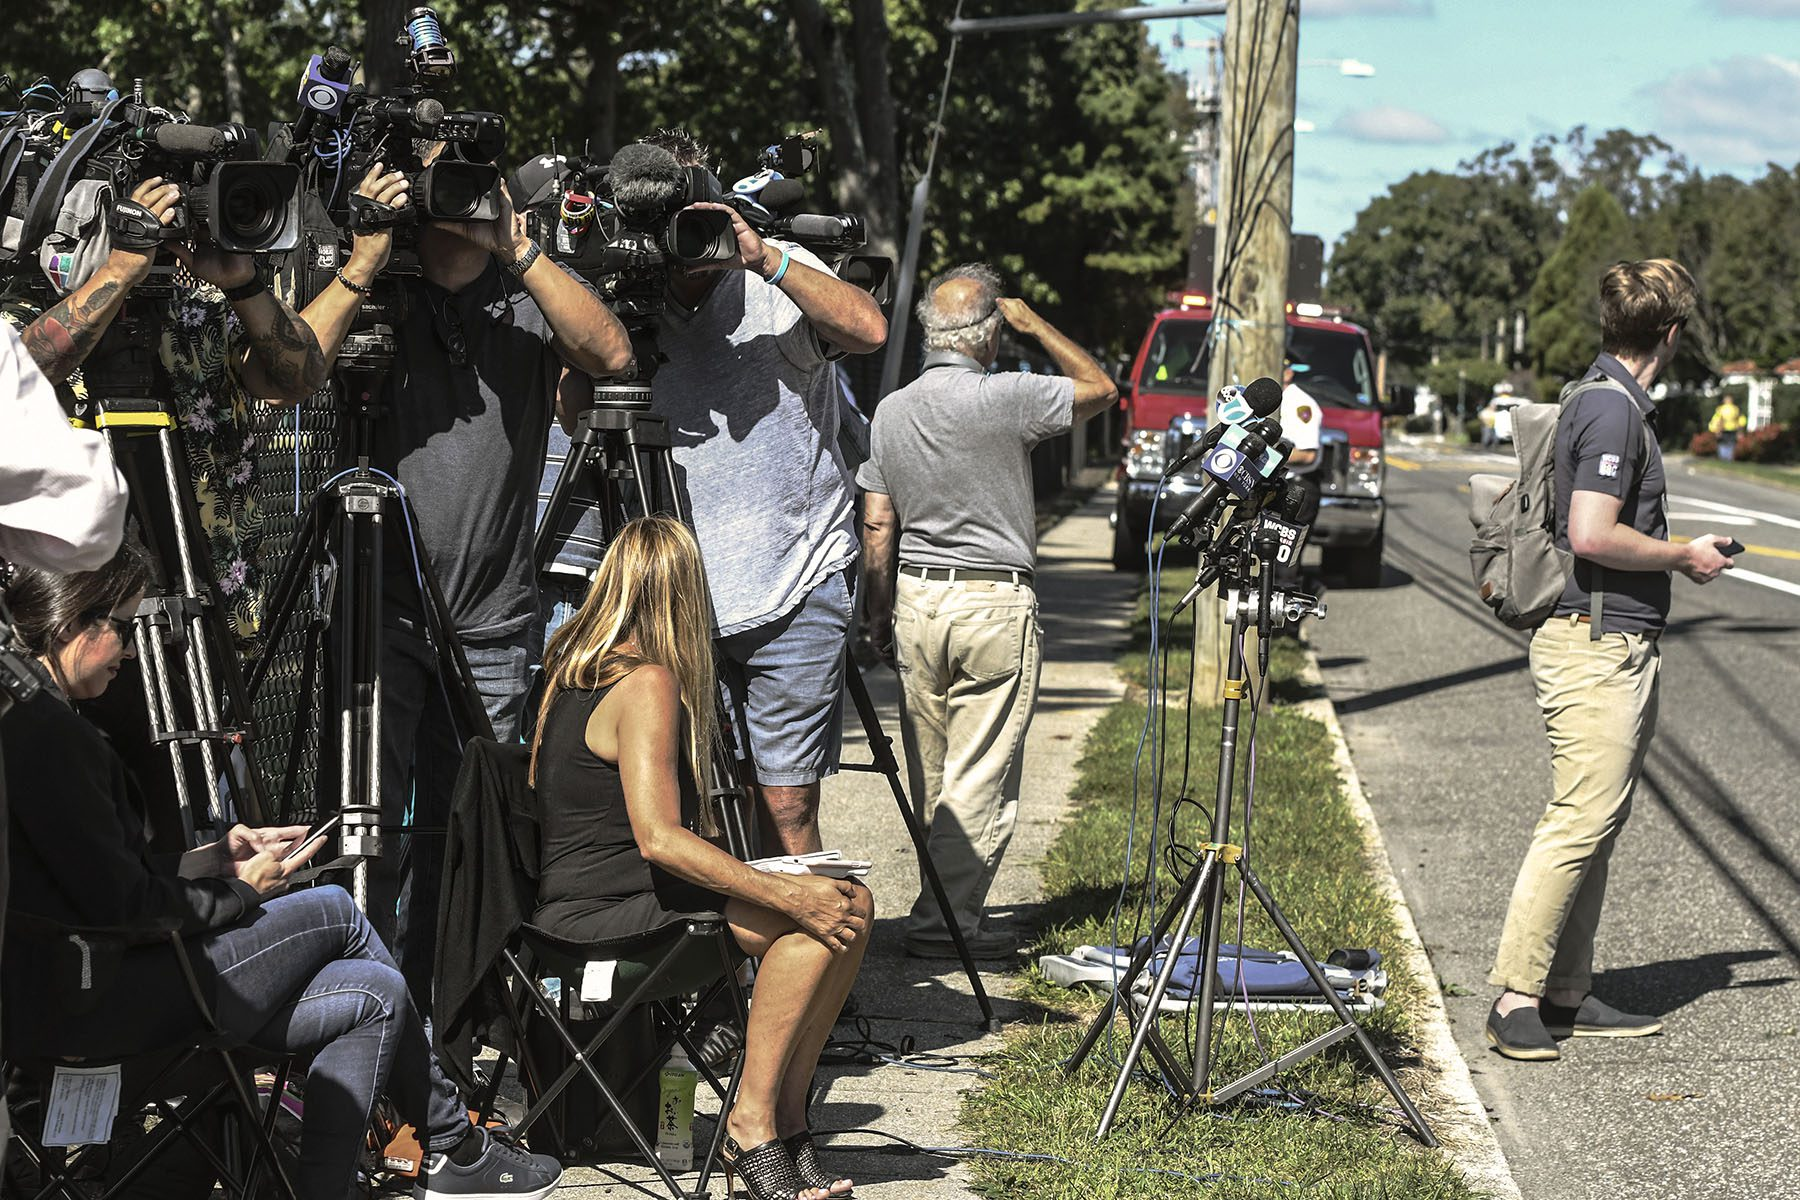 dozens of cameras and microphones, and press are seen on the side of a street.